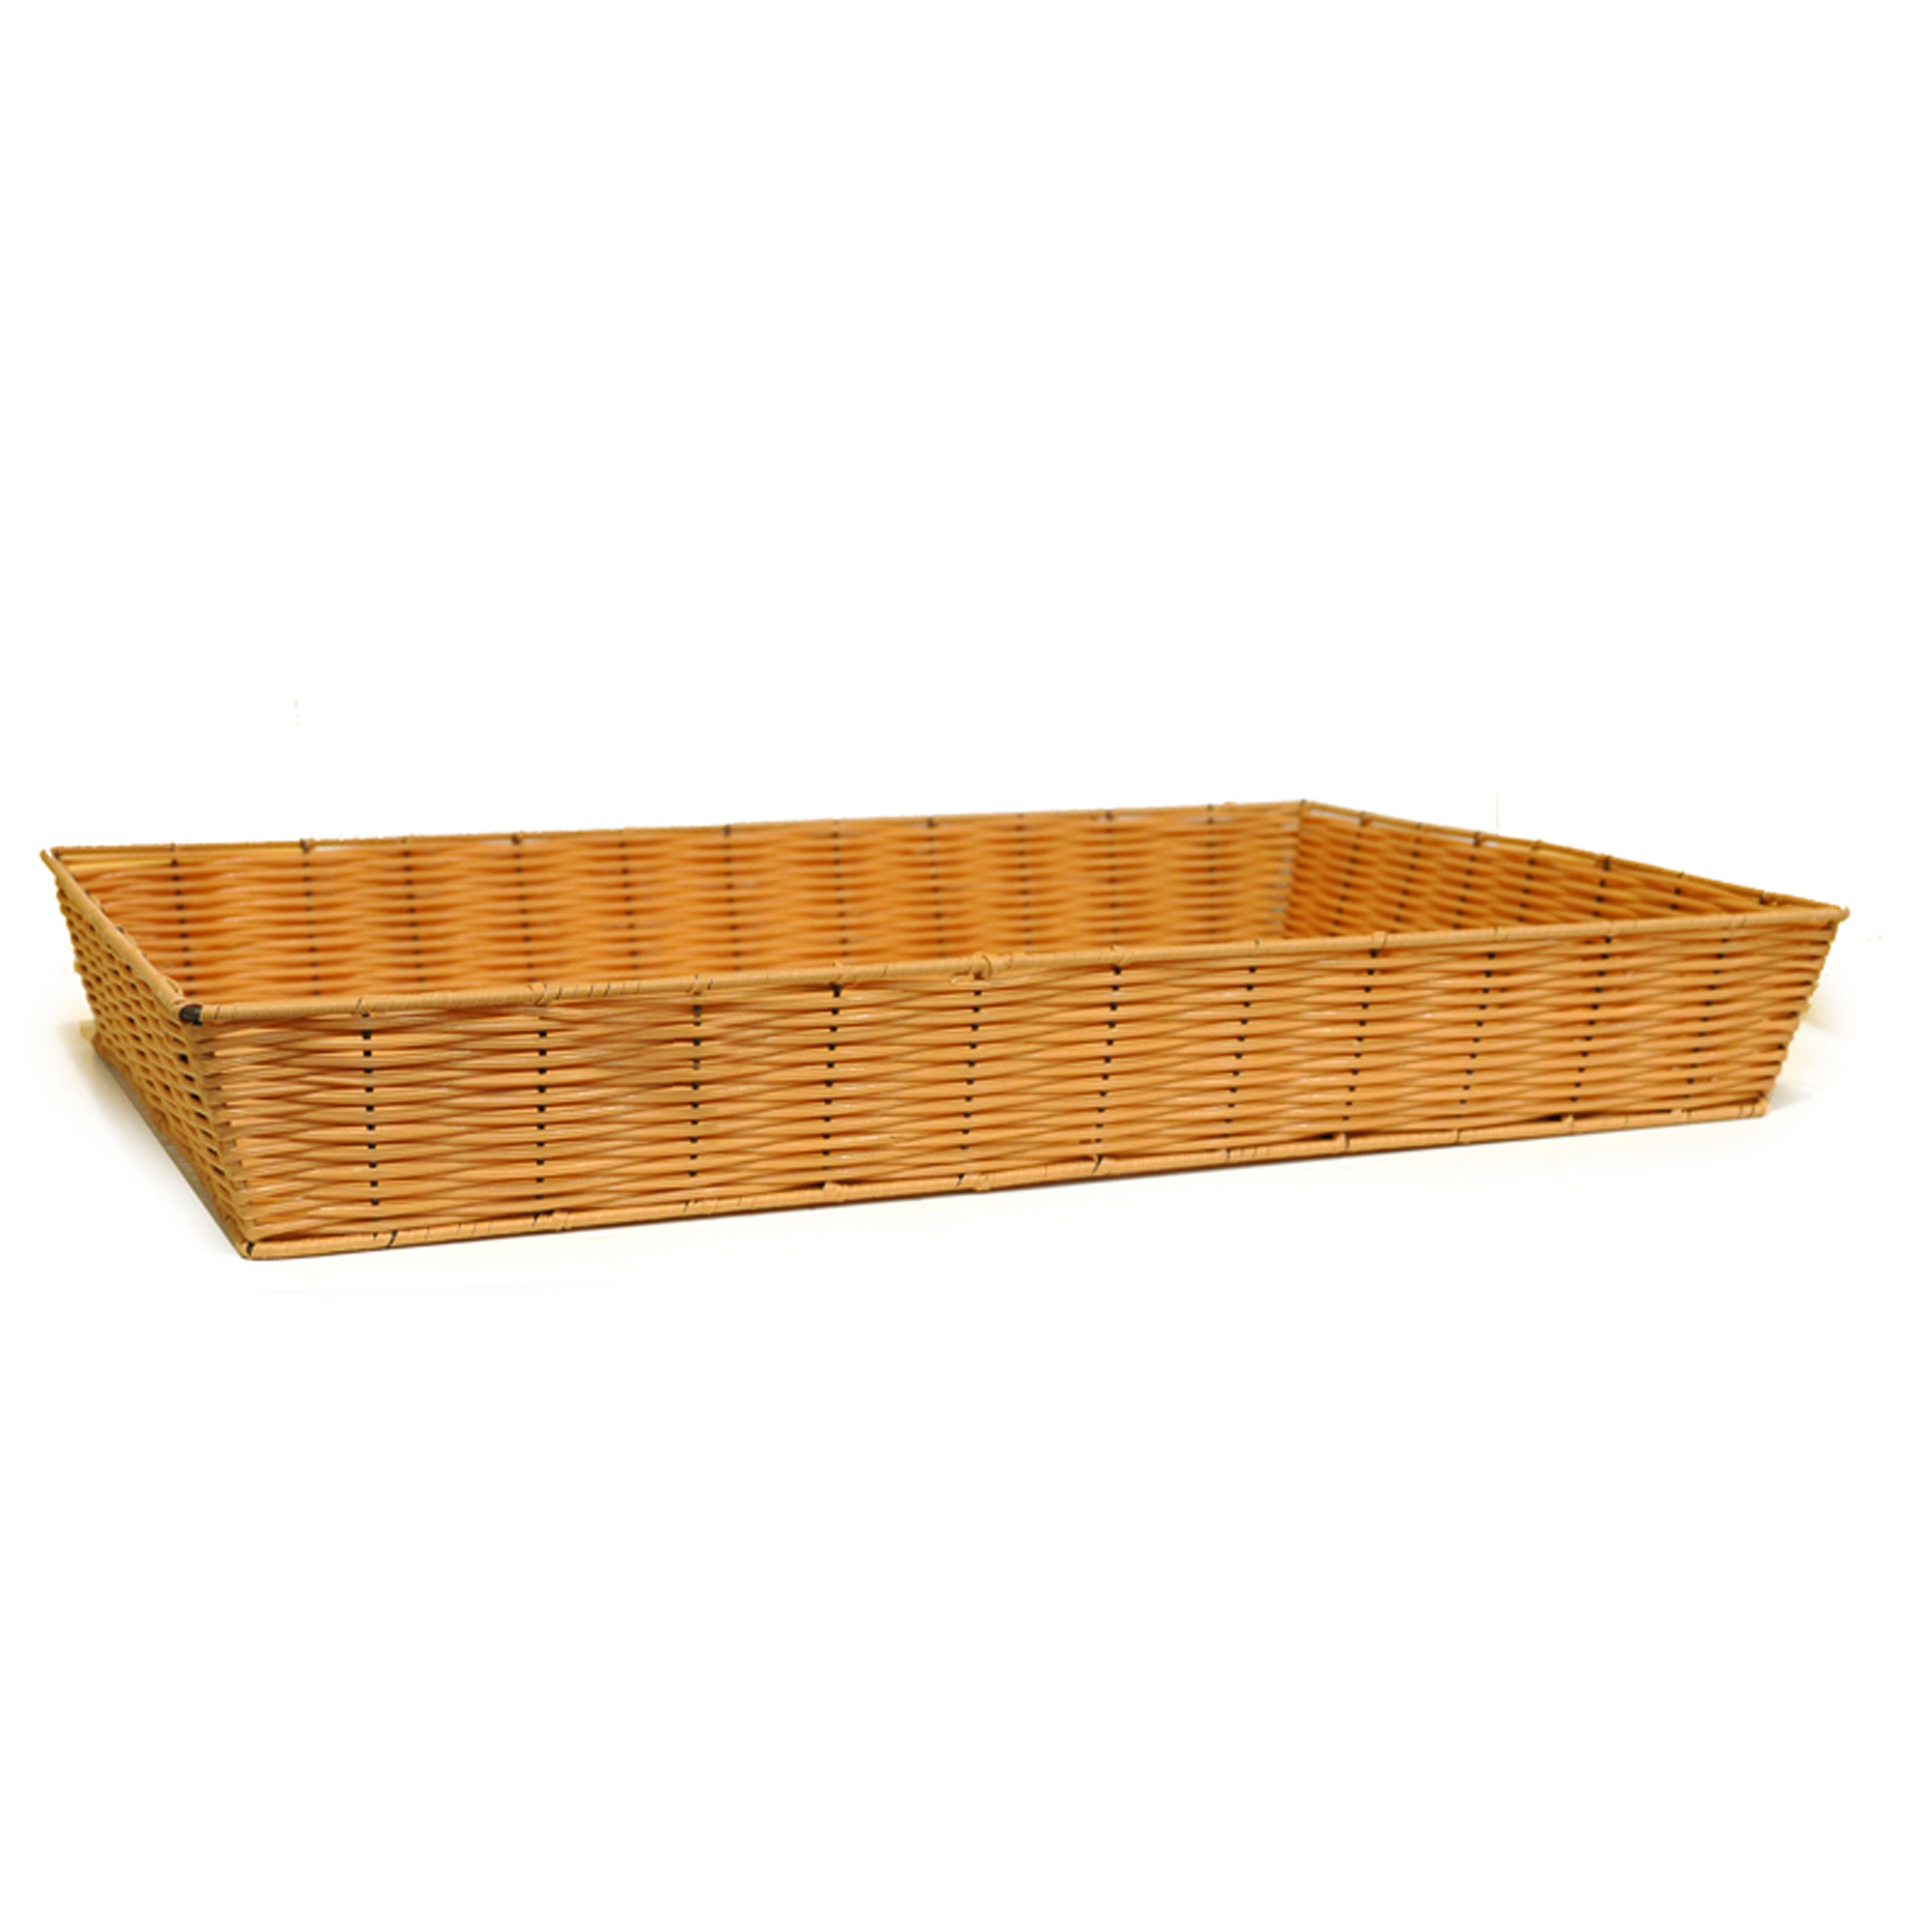 Rect Synthetic Wicker Tray - Extra Large 25in